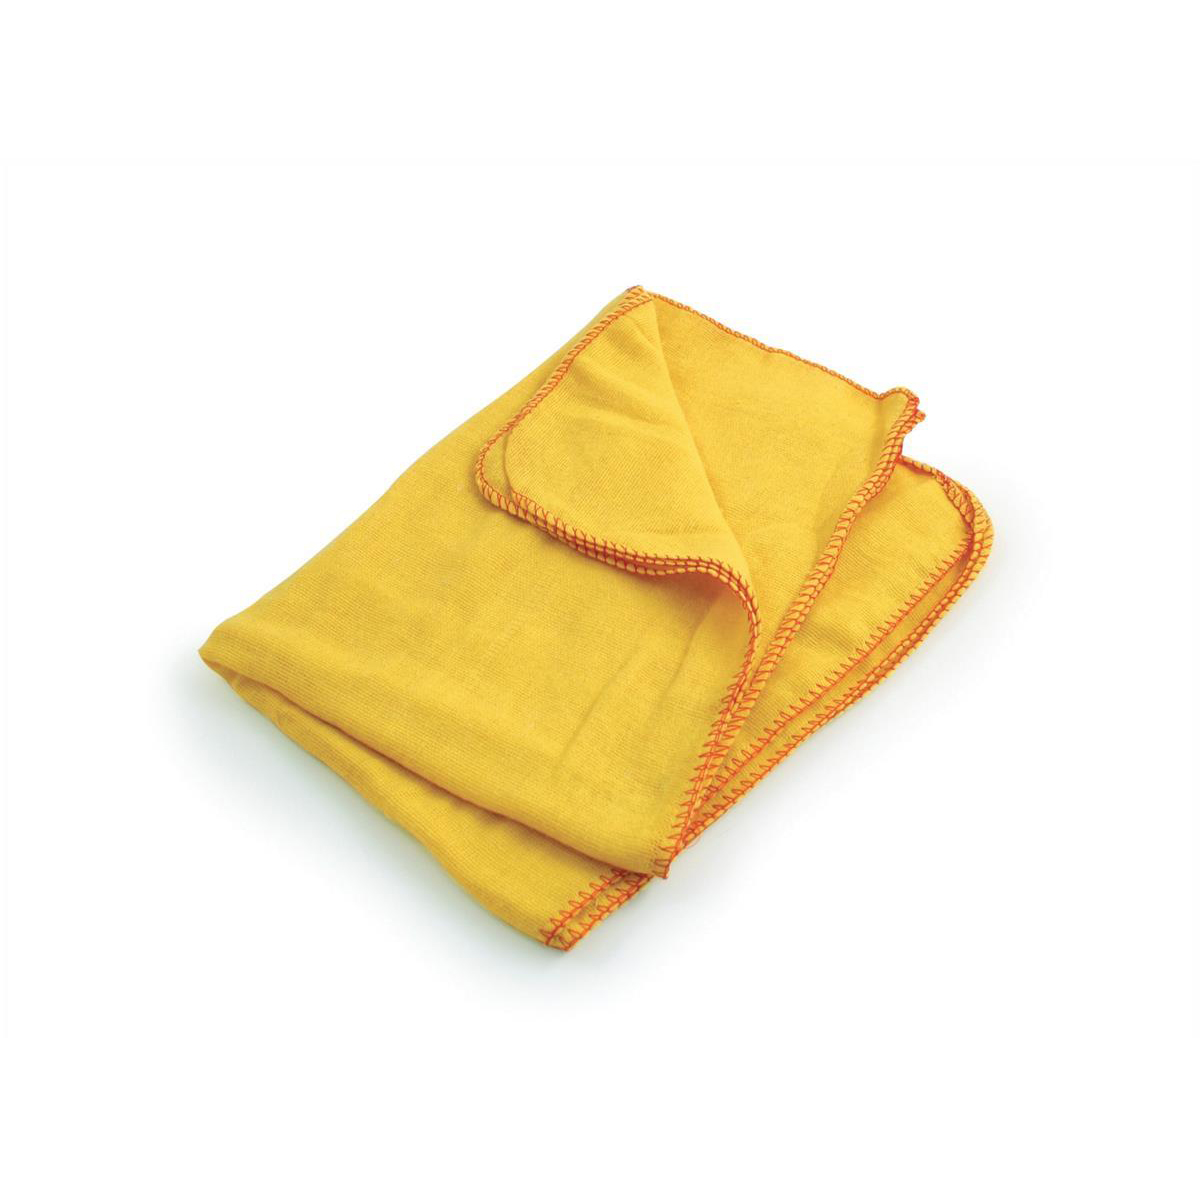 Cloths / Dusters / Scourers / Sponges 5 Star Facilities Yellow Dusters 100% Cotton 350x350mm Pack 10